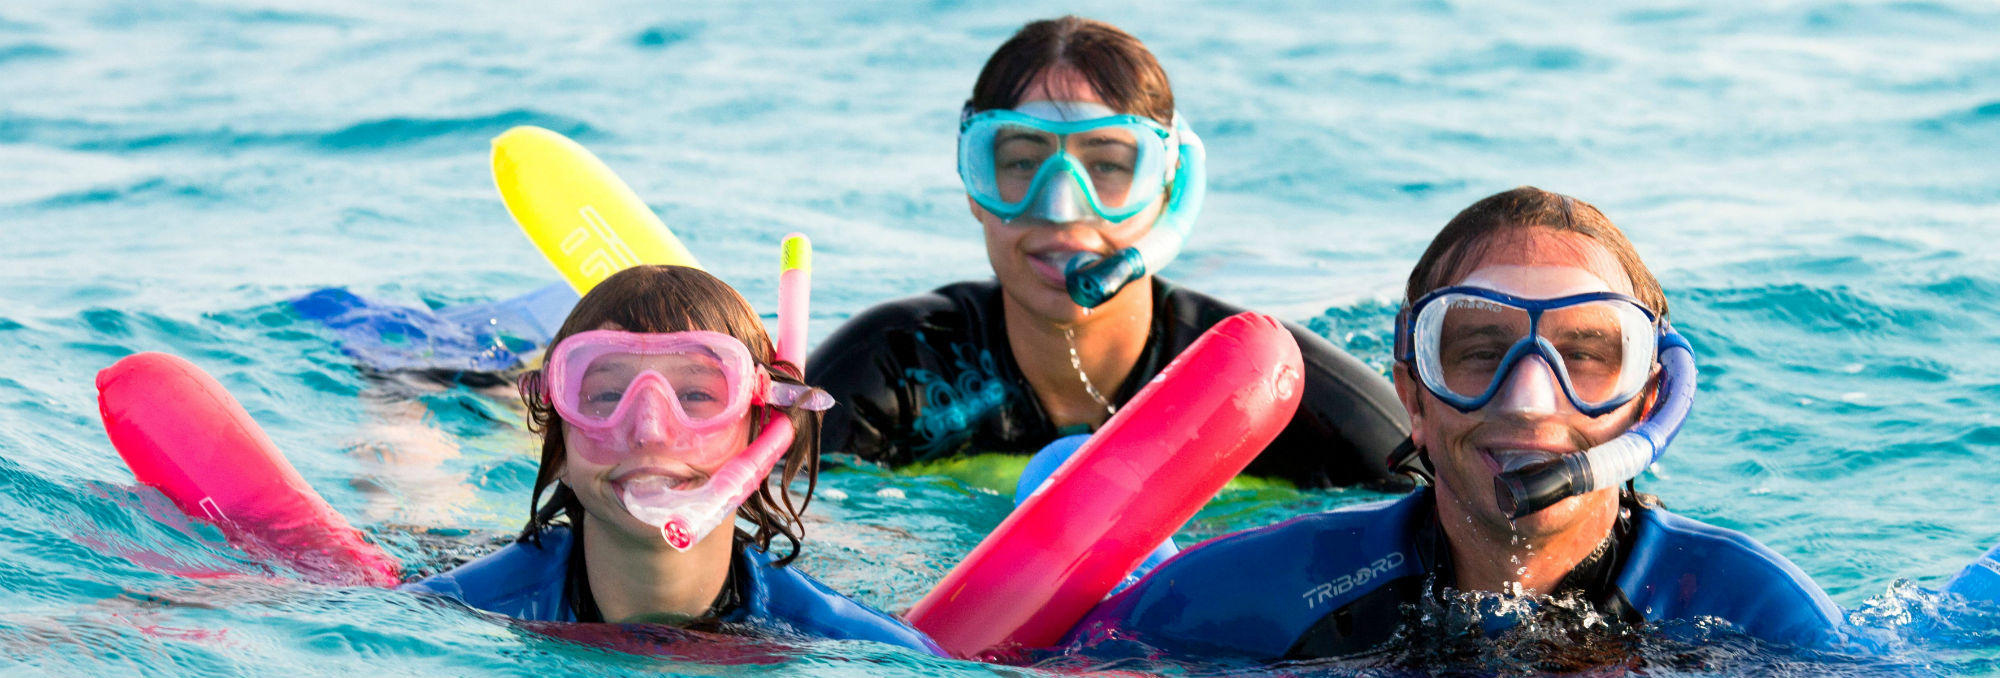 Right way of using a snorkeling mask and snorkel